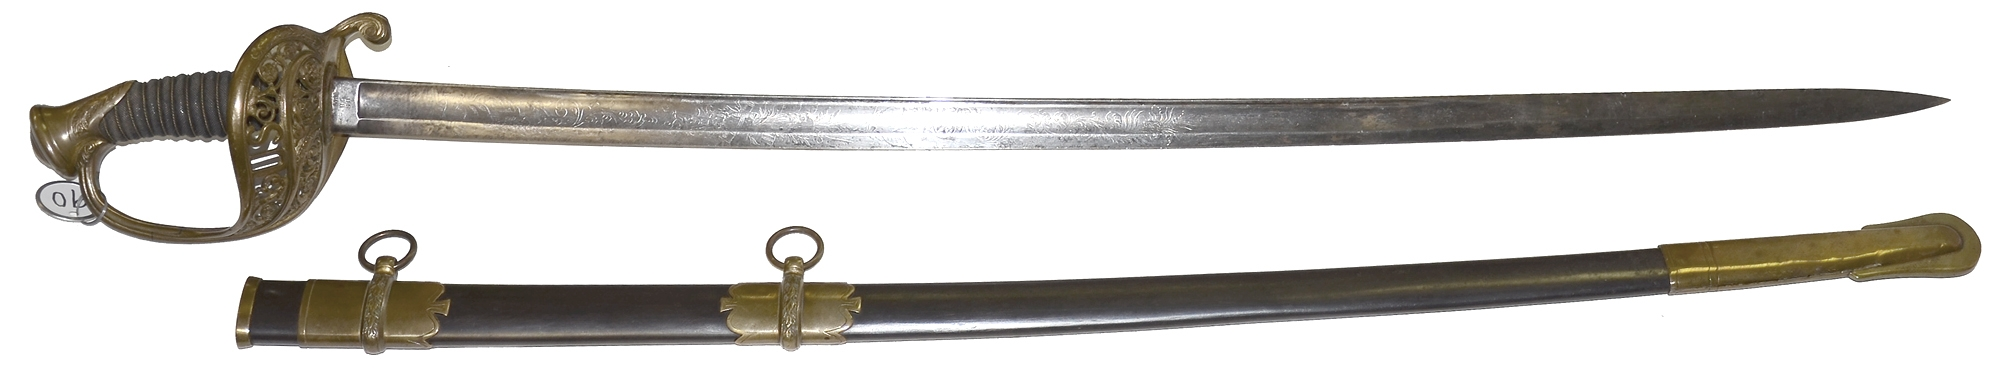 EXTREMELY SCARCE US INSPECTED AND 1861 DATED AMES 1850 STAFF AND FIELD OFFICER'S SWORD